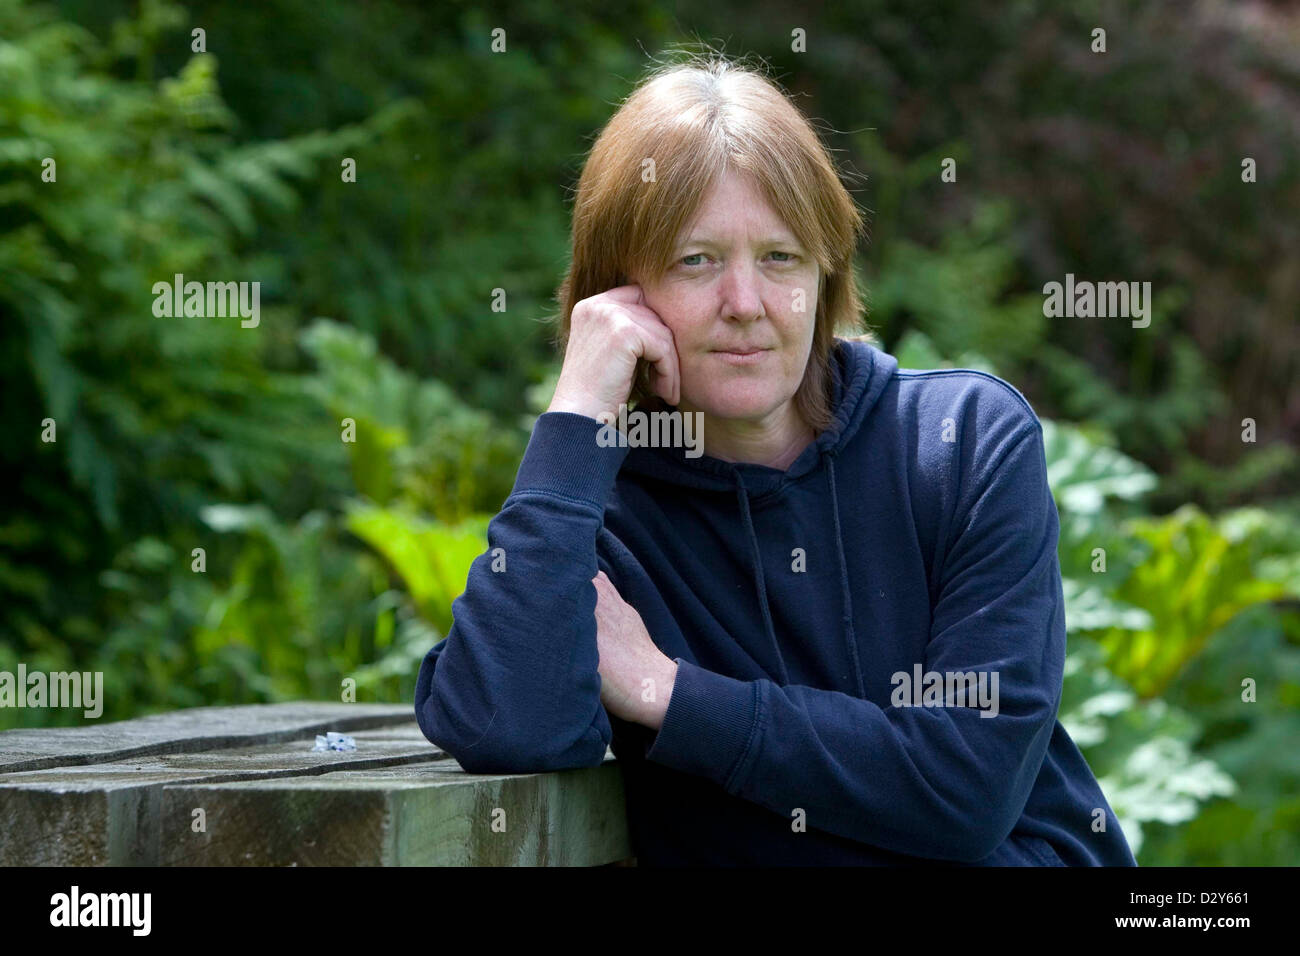 04.06.08. Jacqui Thompson at home near Llanwrda, West Wales. - Stock Image